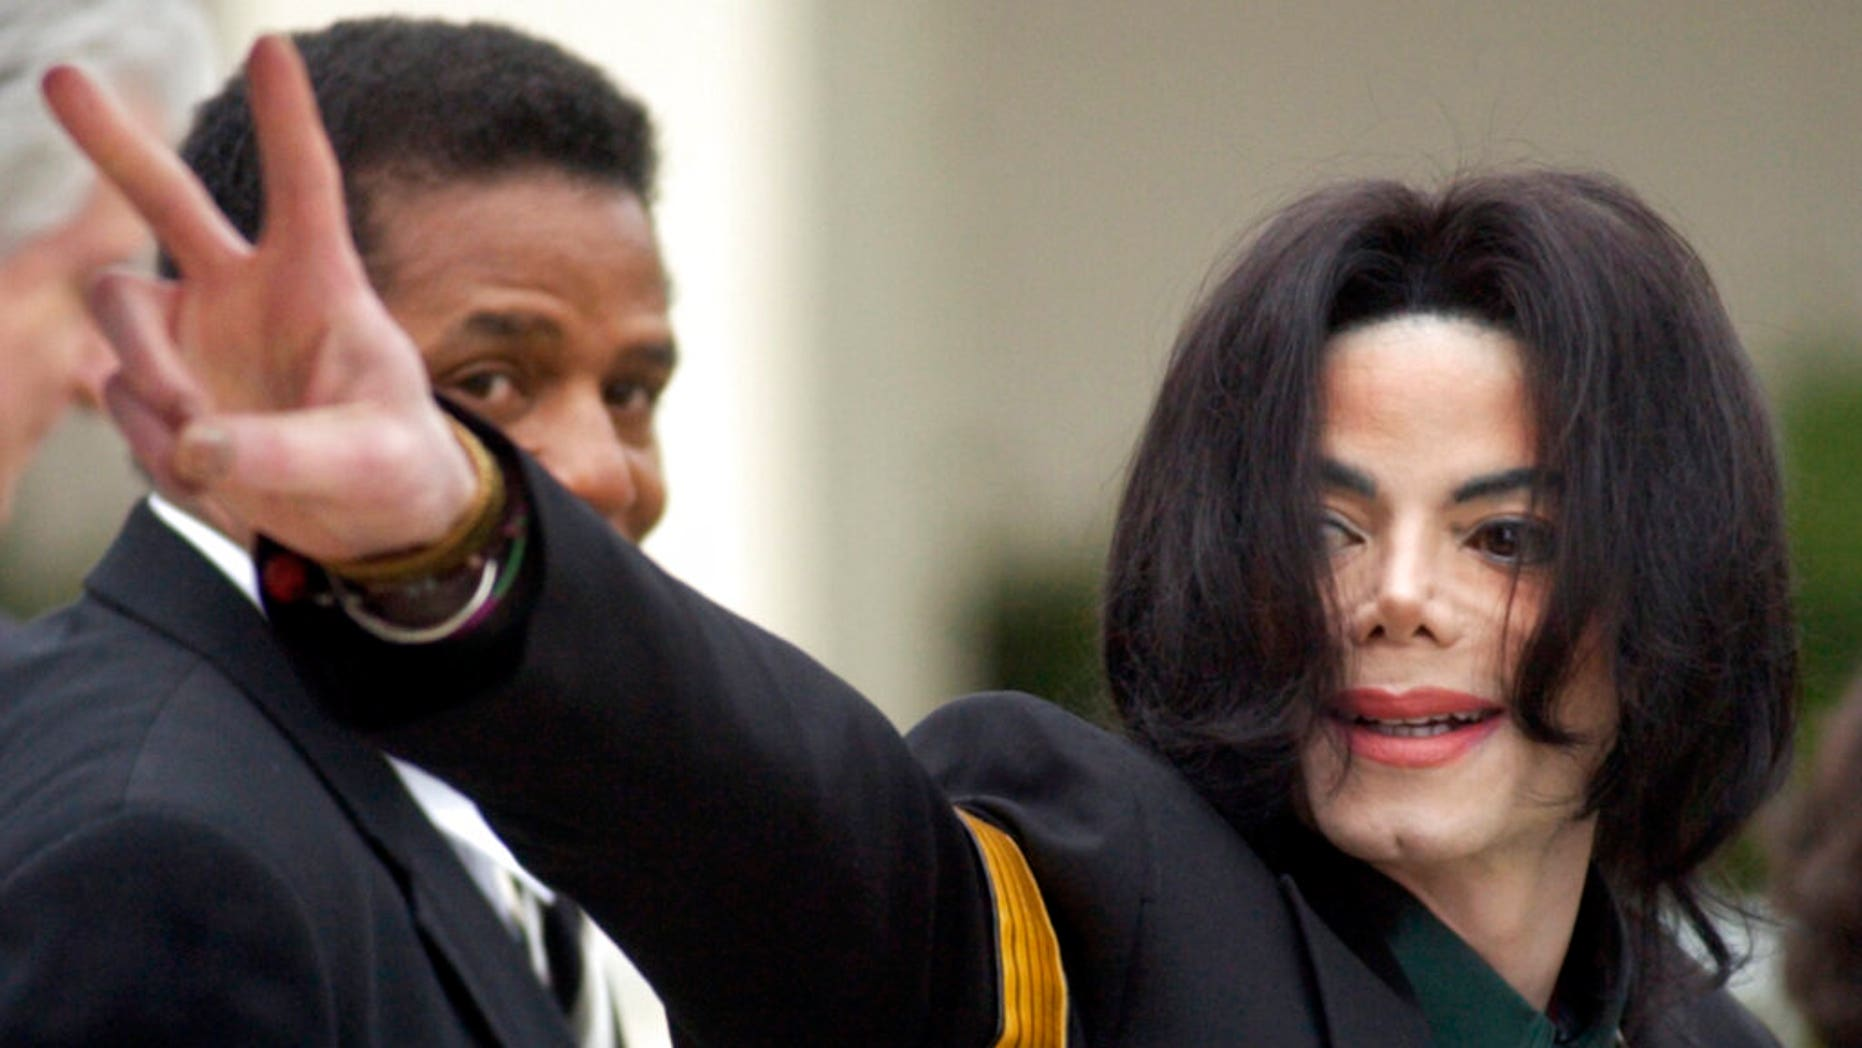 Michael Jackson waves to his supporters as he arrives for his child molestation trial at the Santa Barbara County Superior Court in Santa Maria, Calif., March 2, 2005. (Associated Press)